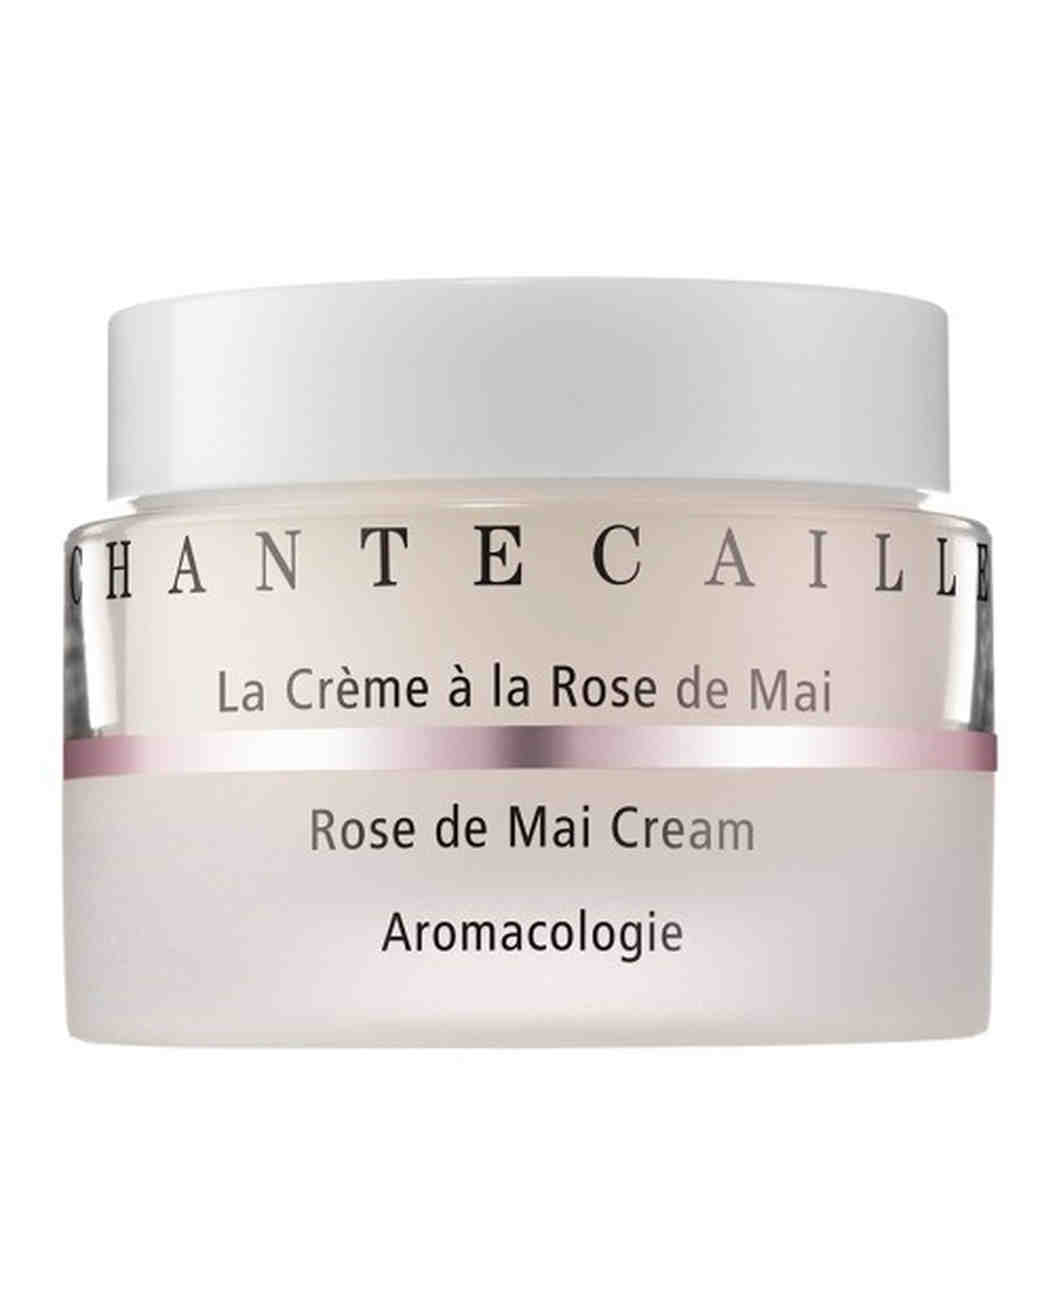 rose-beauty-products-chantecaille-rose-de-mai-cream-0615.jpg